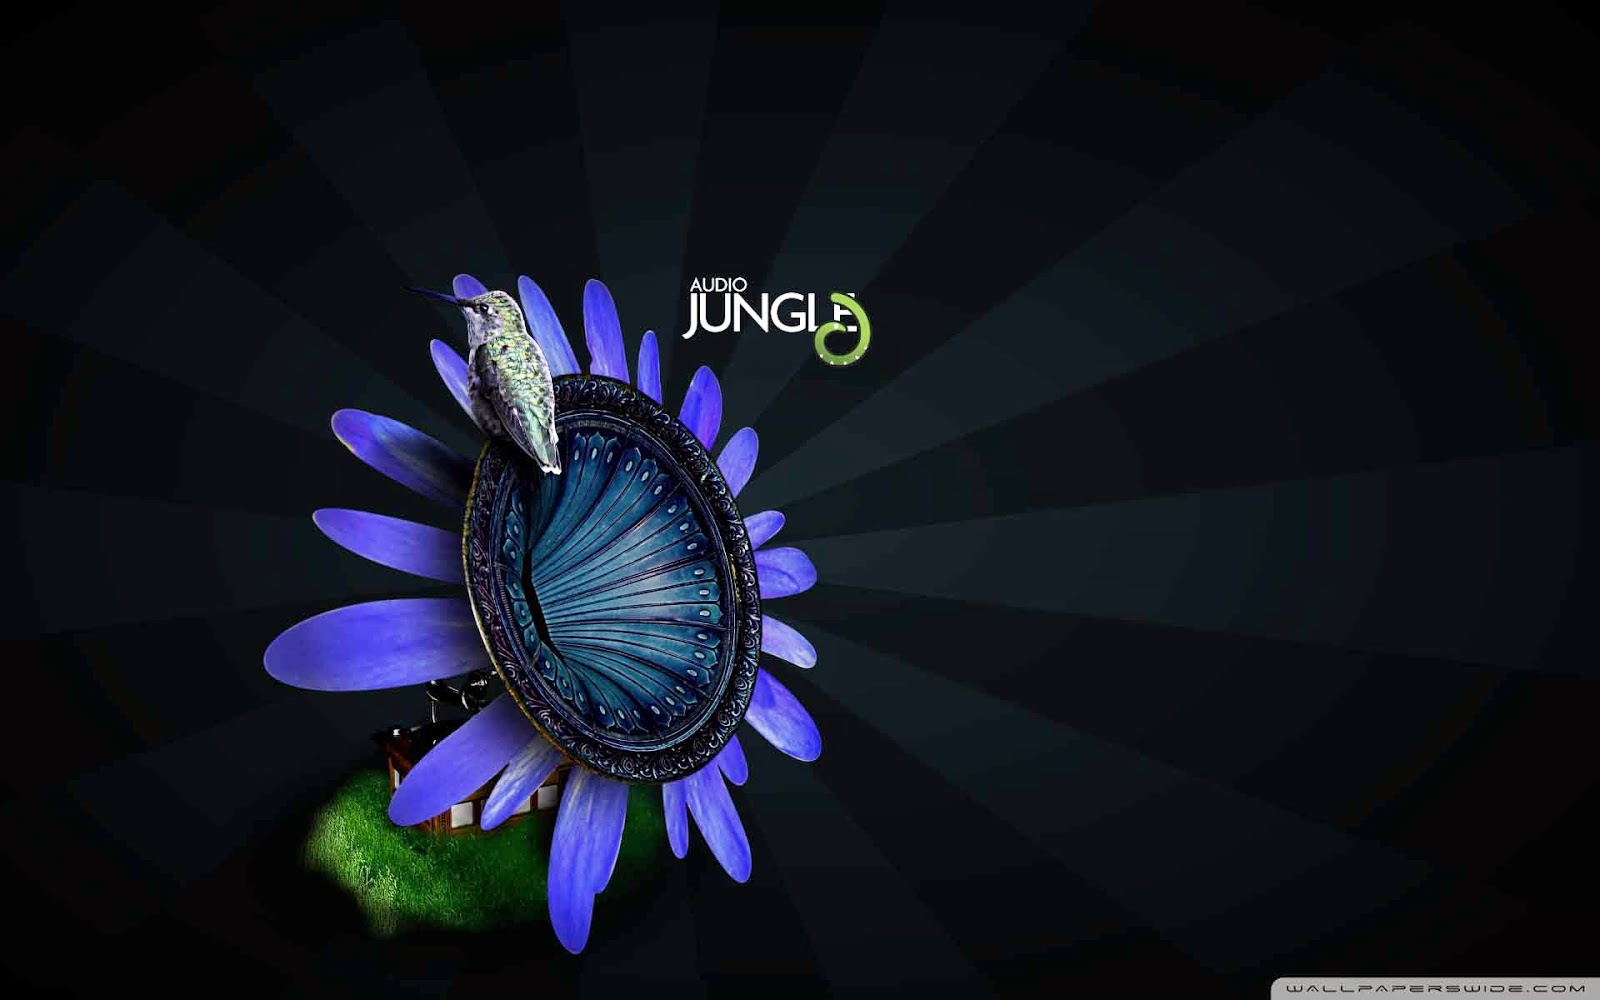 bird on flower gramophone audio jungle wallpaper